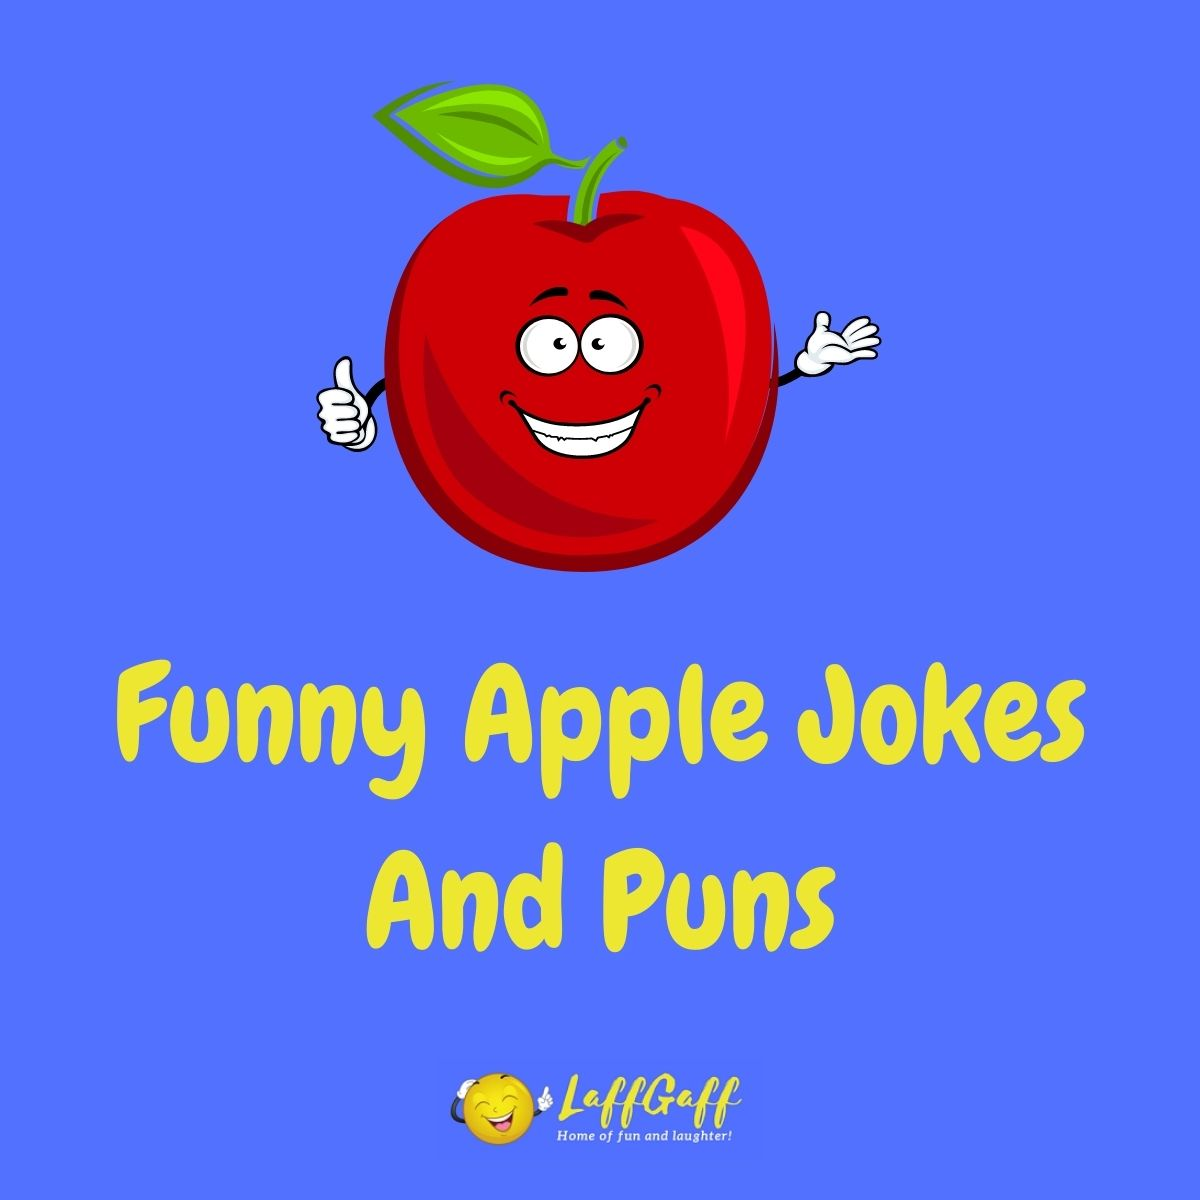 Featured image for a page of funny apple jokes and puns.